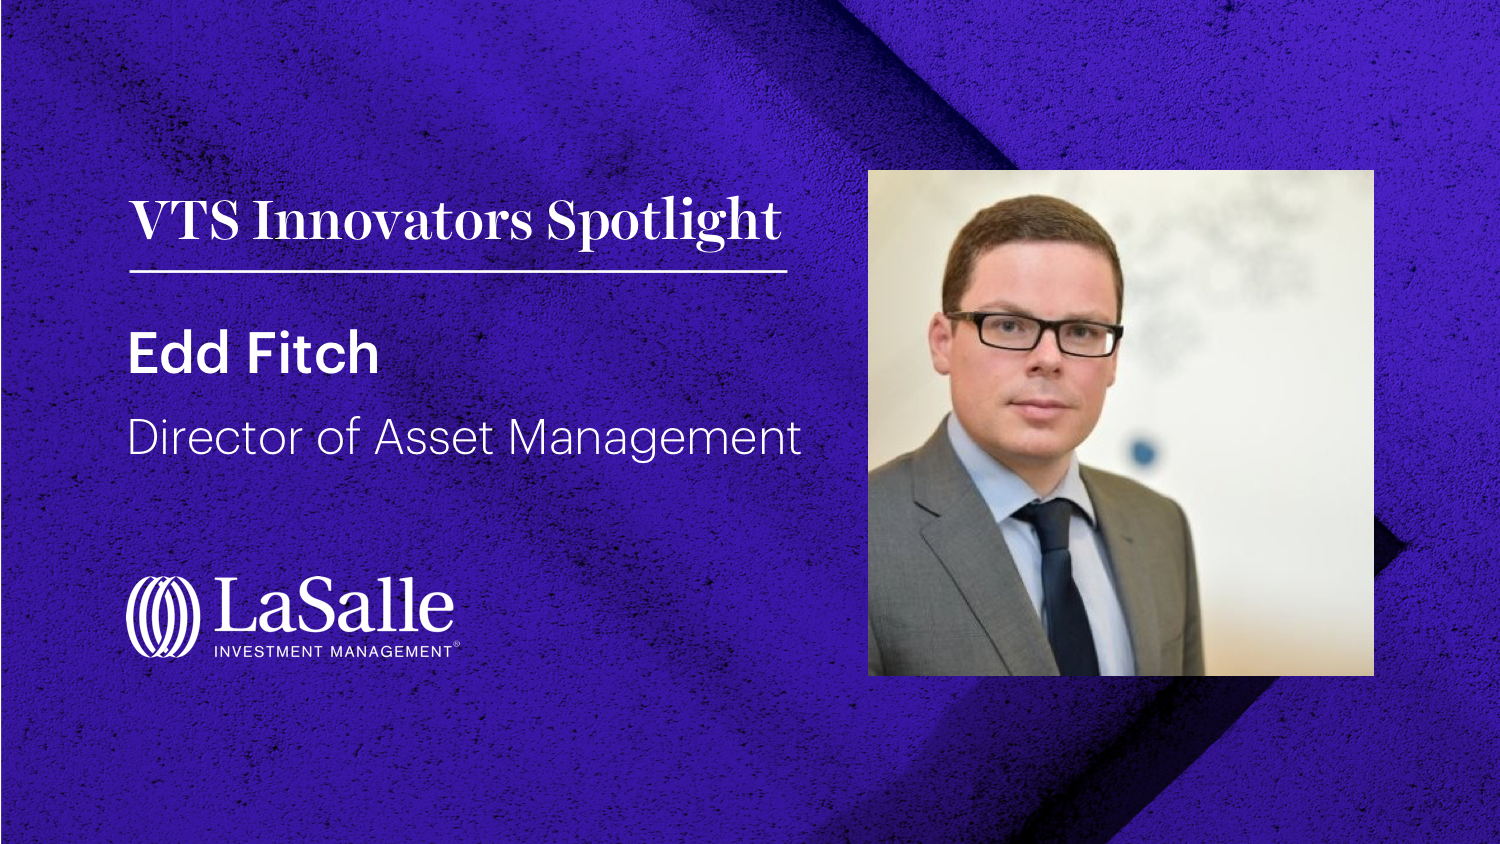 Edd Fitch, Director of Asset Management at LaSalle, on Using Technology to Connect with Teams and Industrial Tenants During a Pandemic